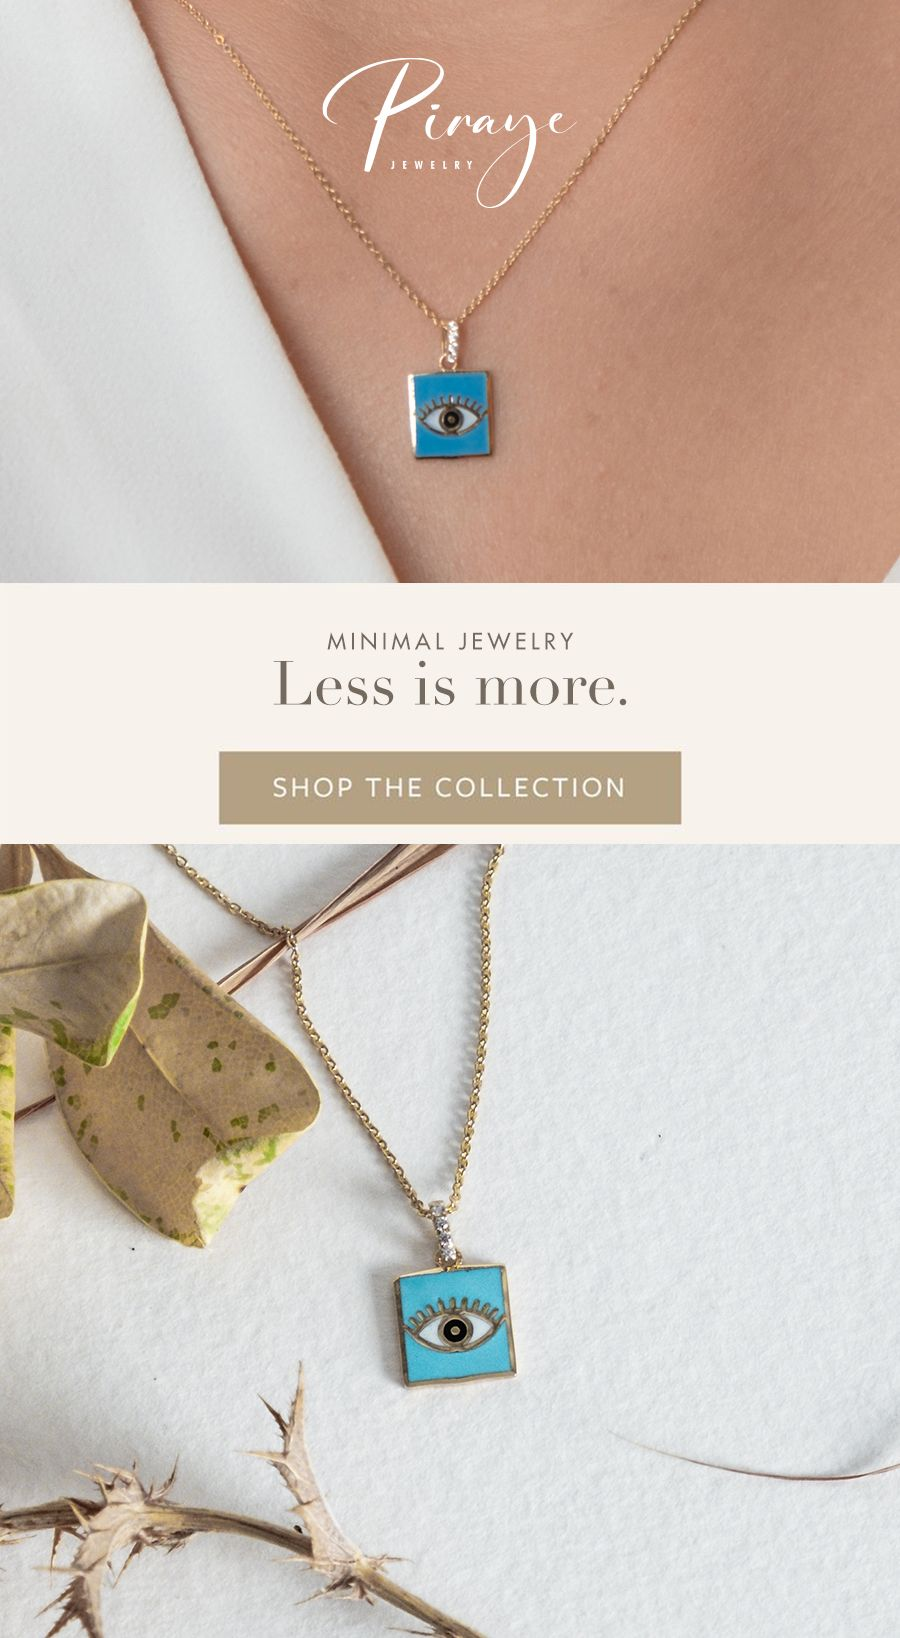 GIft for Her Elegant Necklace Gold Turquoise necklace Anniversary Gift Women/' s Necklaces Delicate Jewelry Valentine/'s Gift Pendant